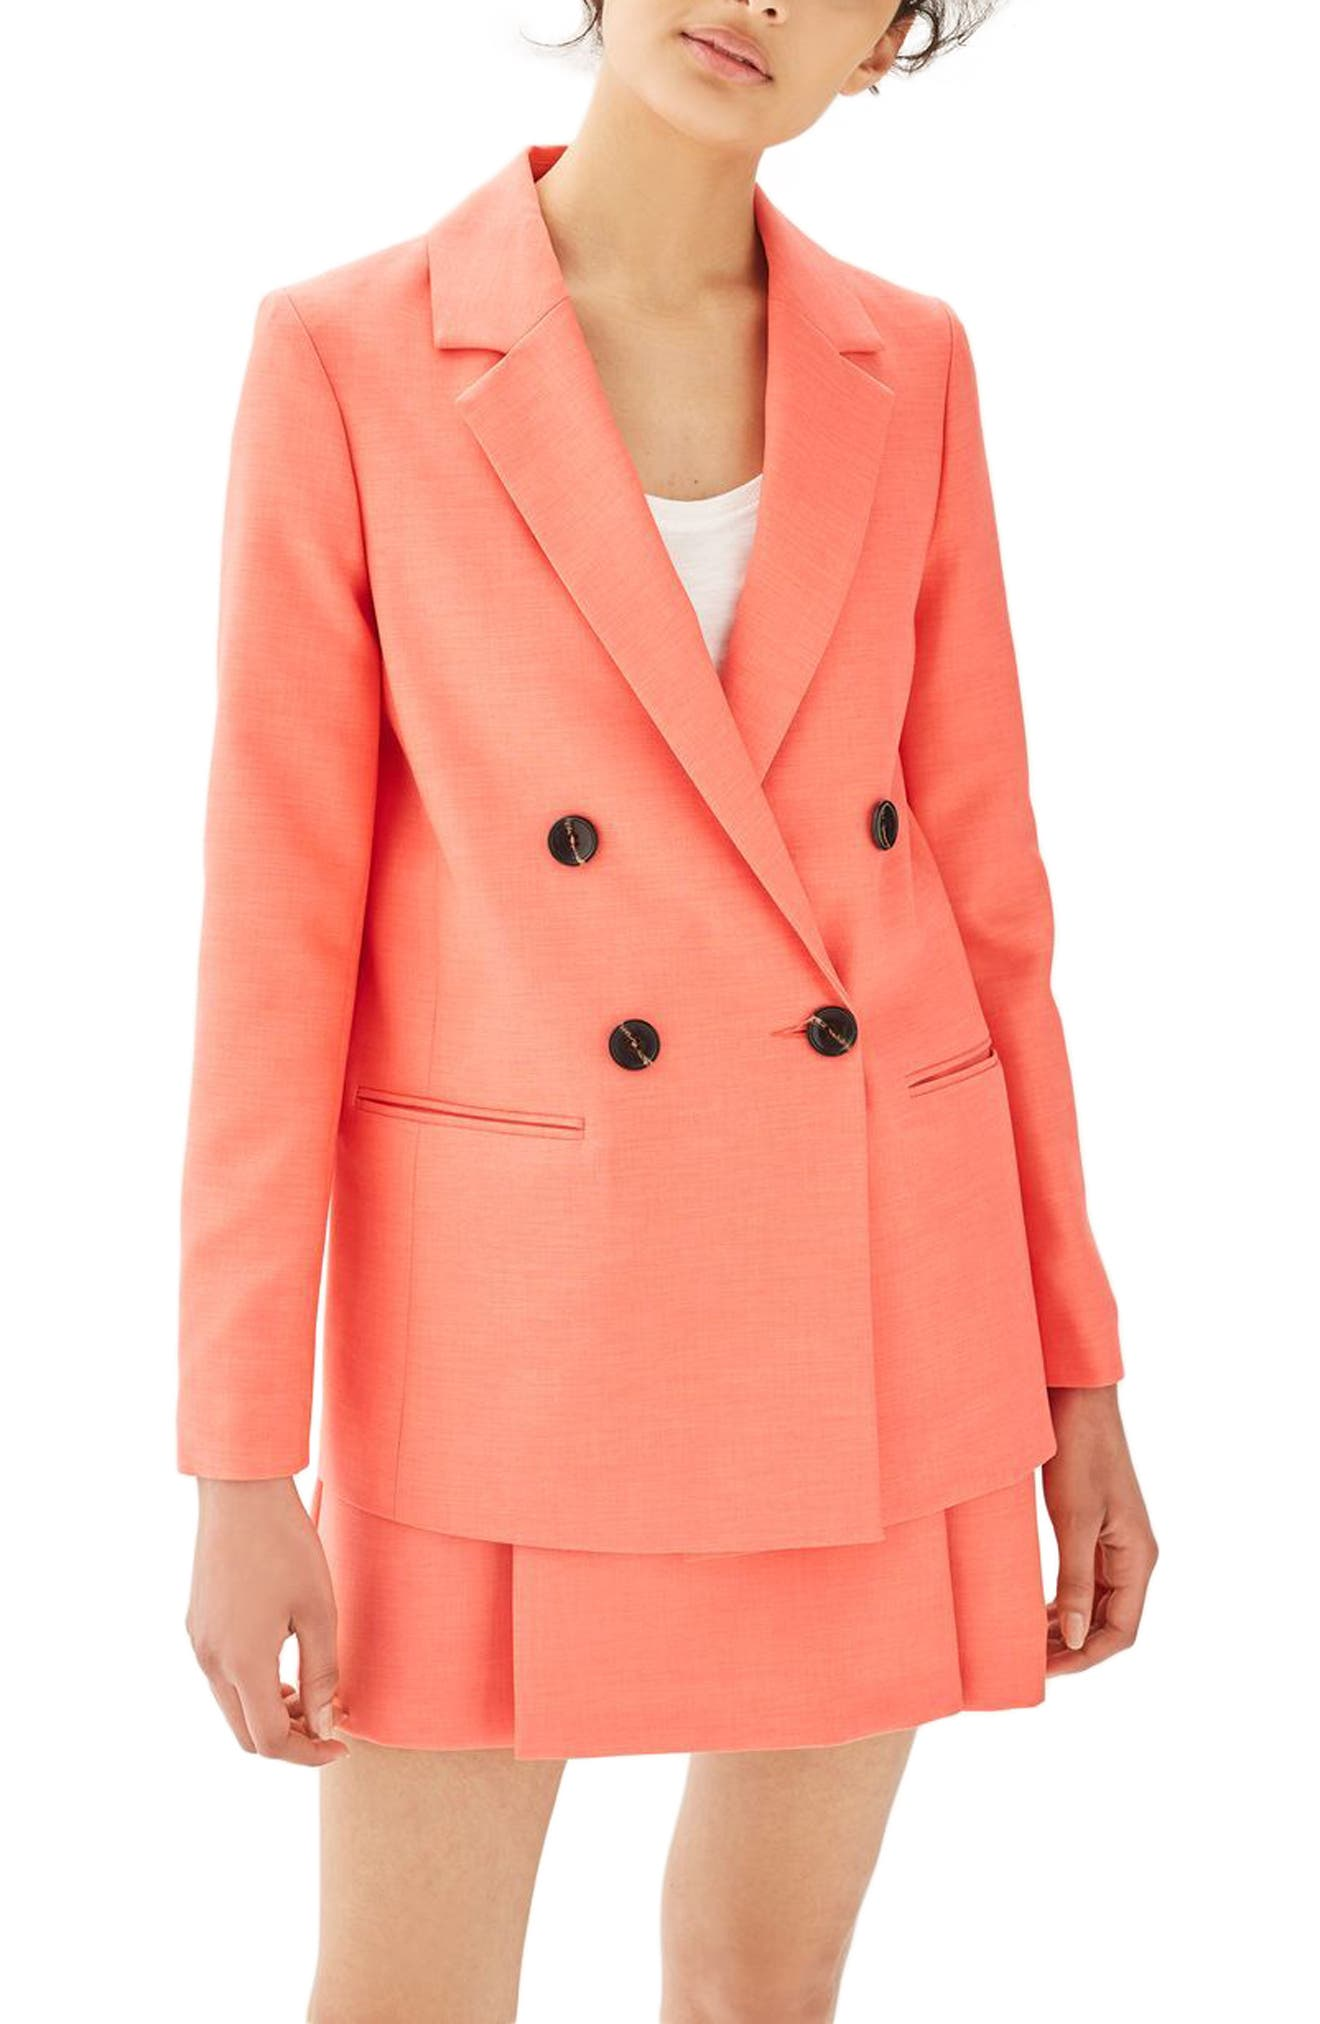 Topshop Ella Double Breasted Suit Jacket